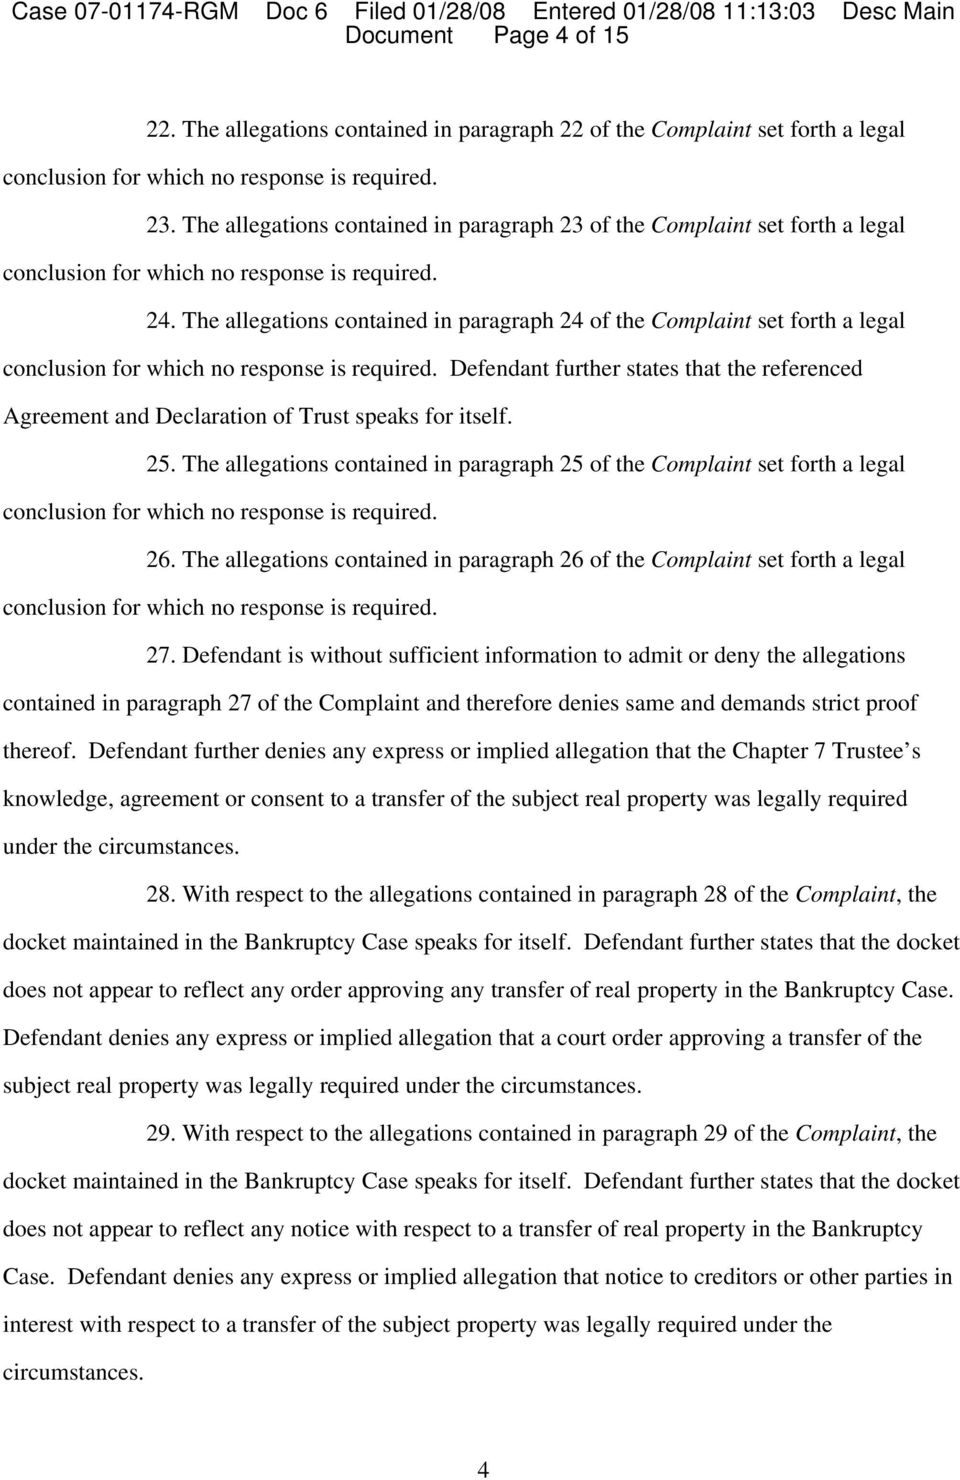 The allegations contained in paragraph 24 of the Complaint set forth a legal conclusion for which no response is required.